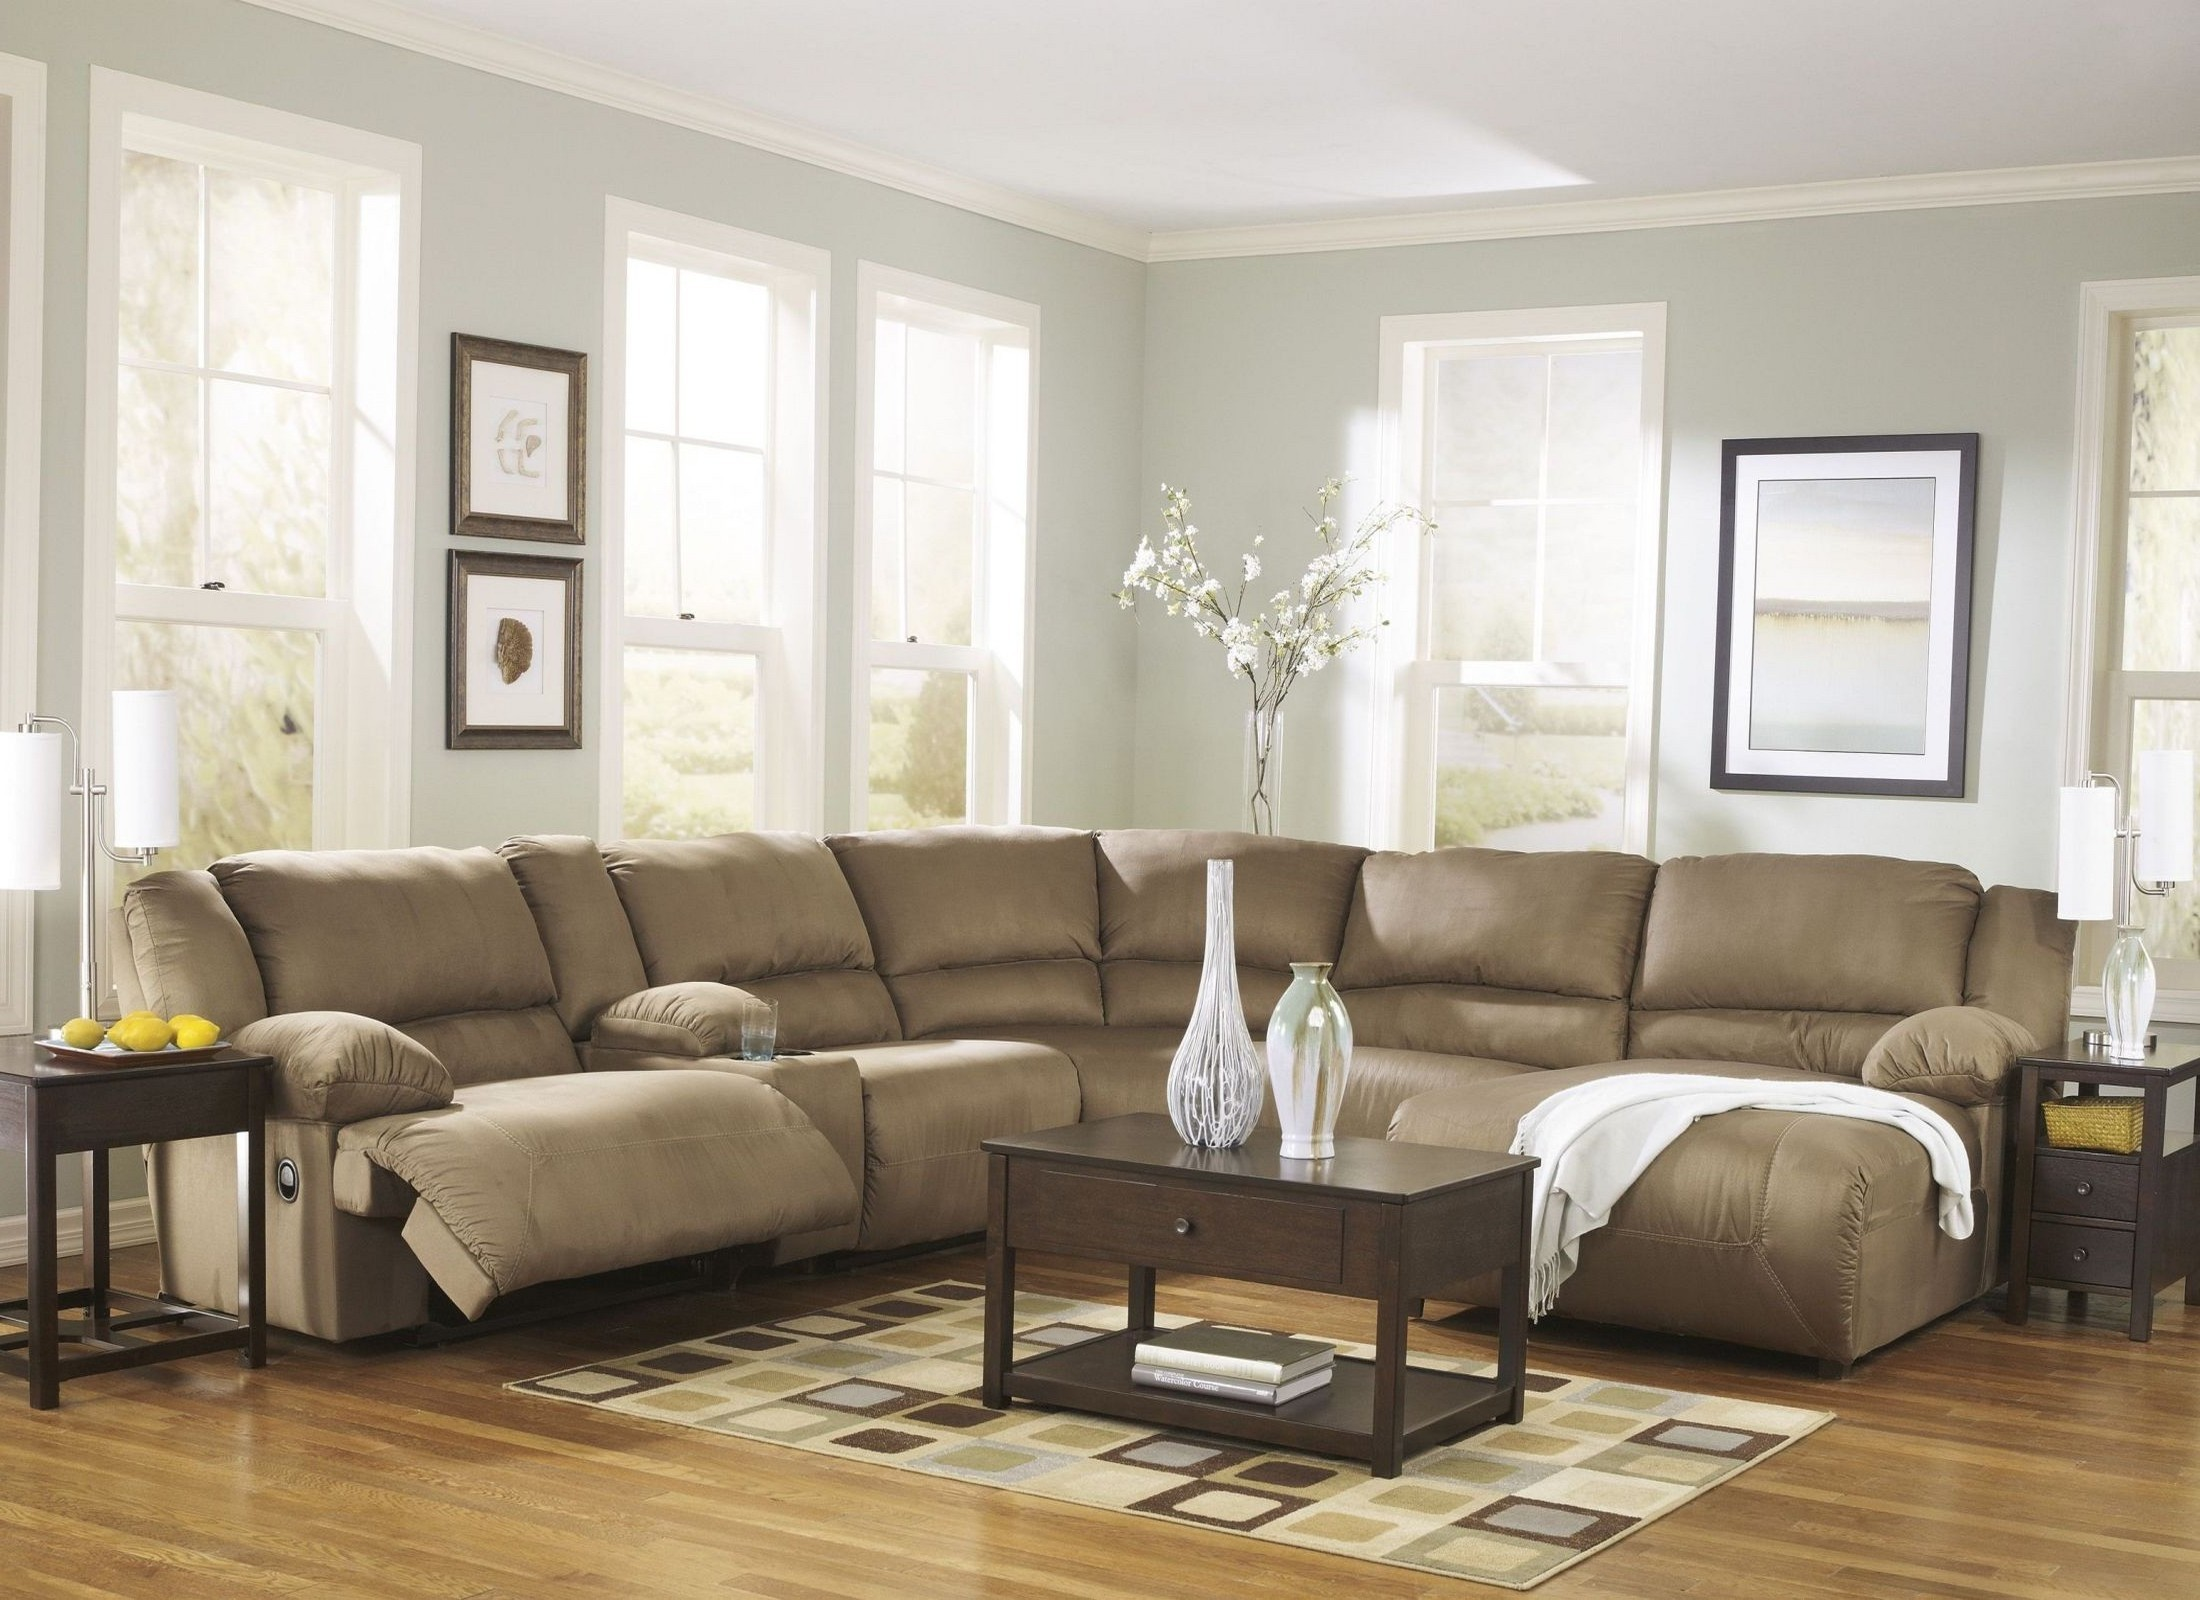 Hogan mocha right chaise reclining sectional from ashley for Ashley mocha sectional with chaise